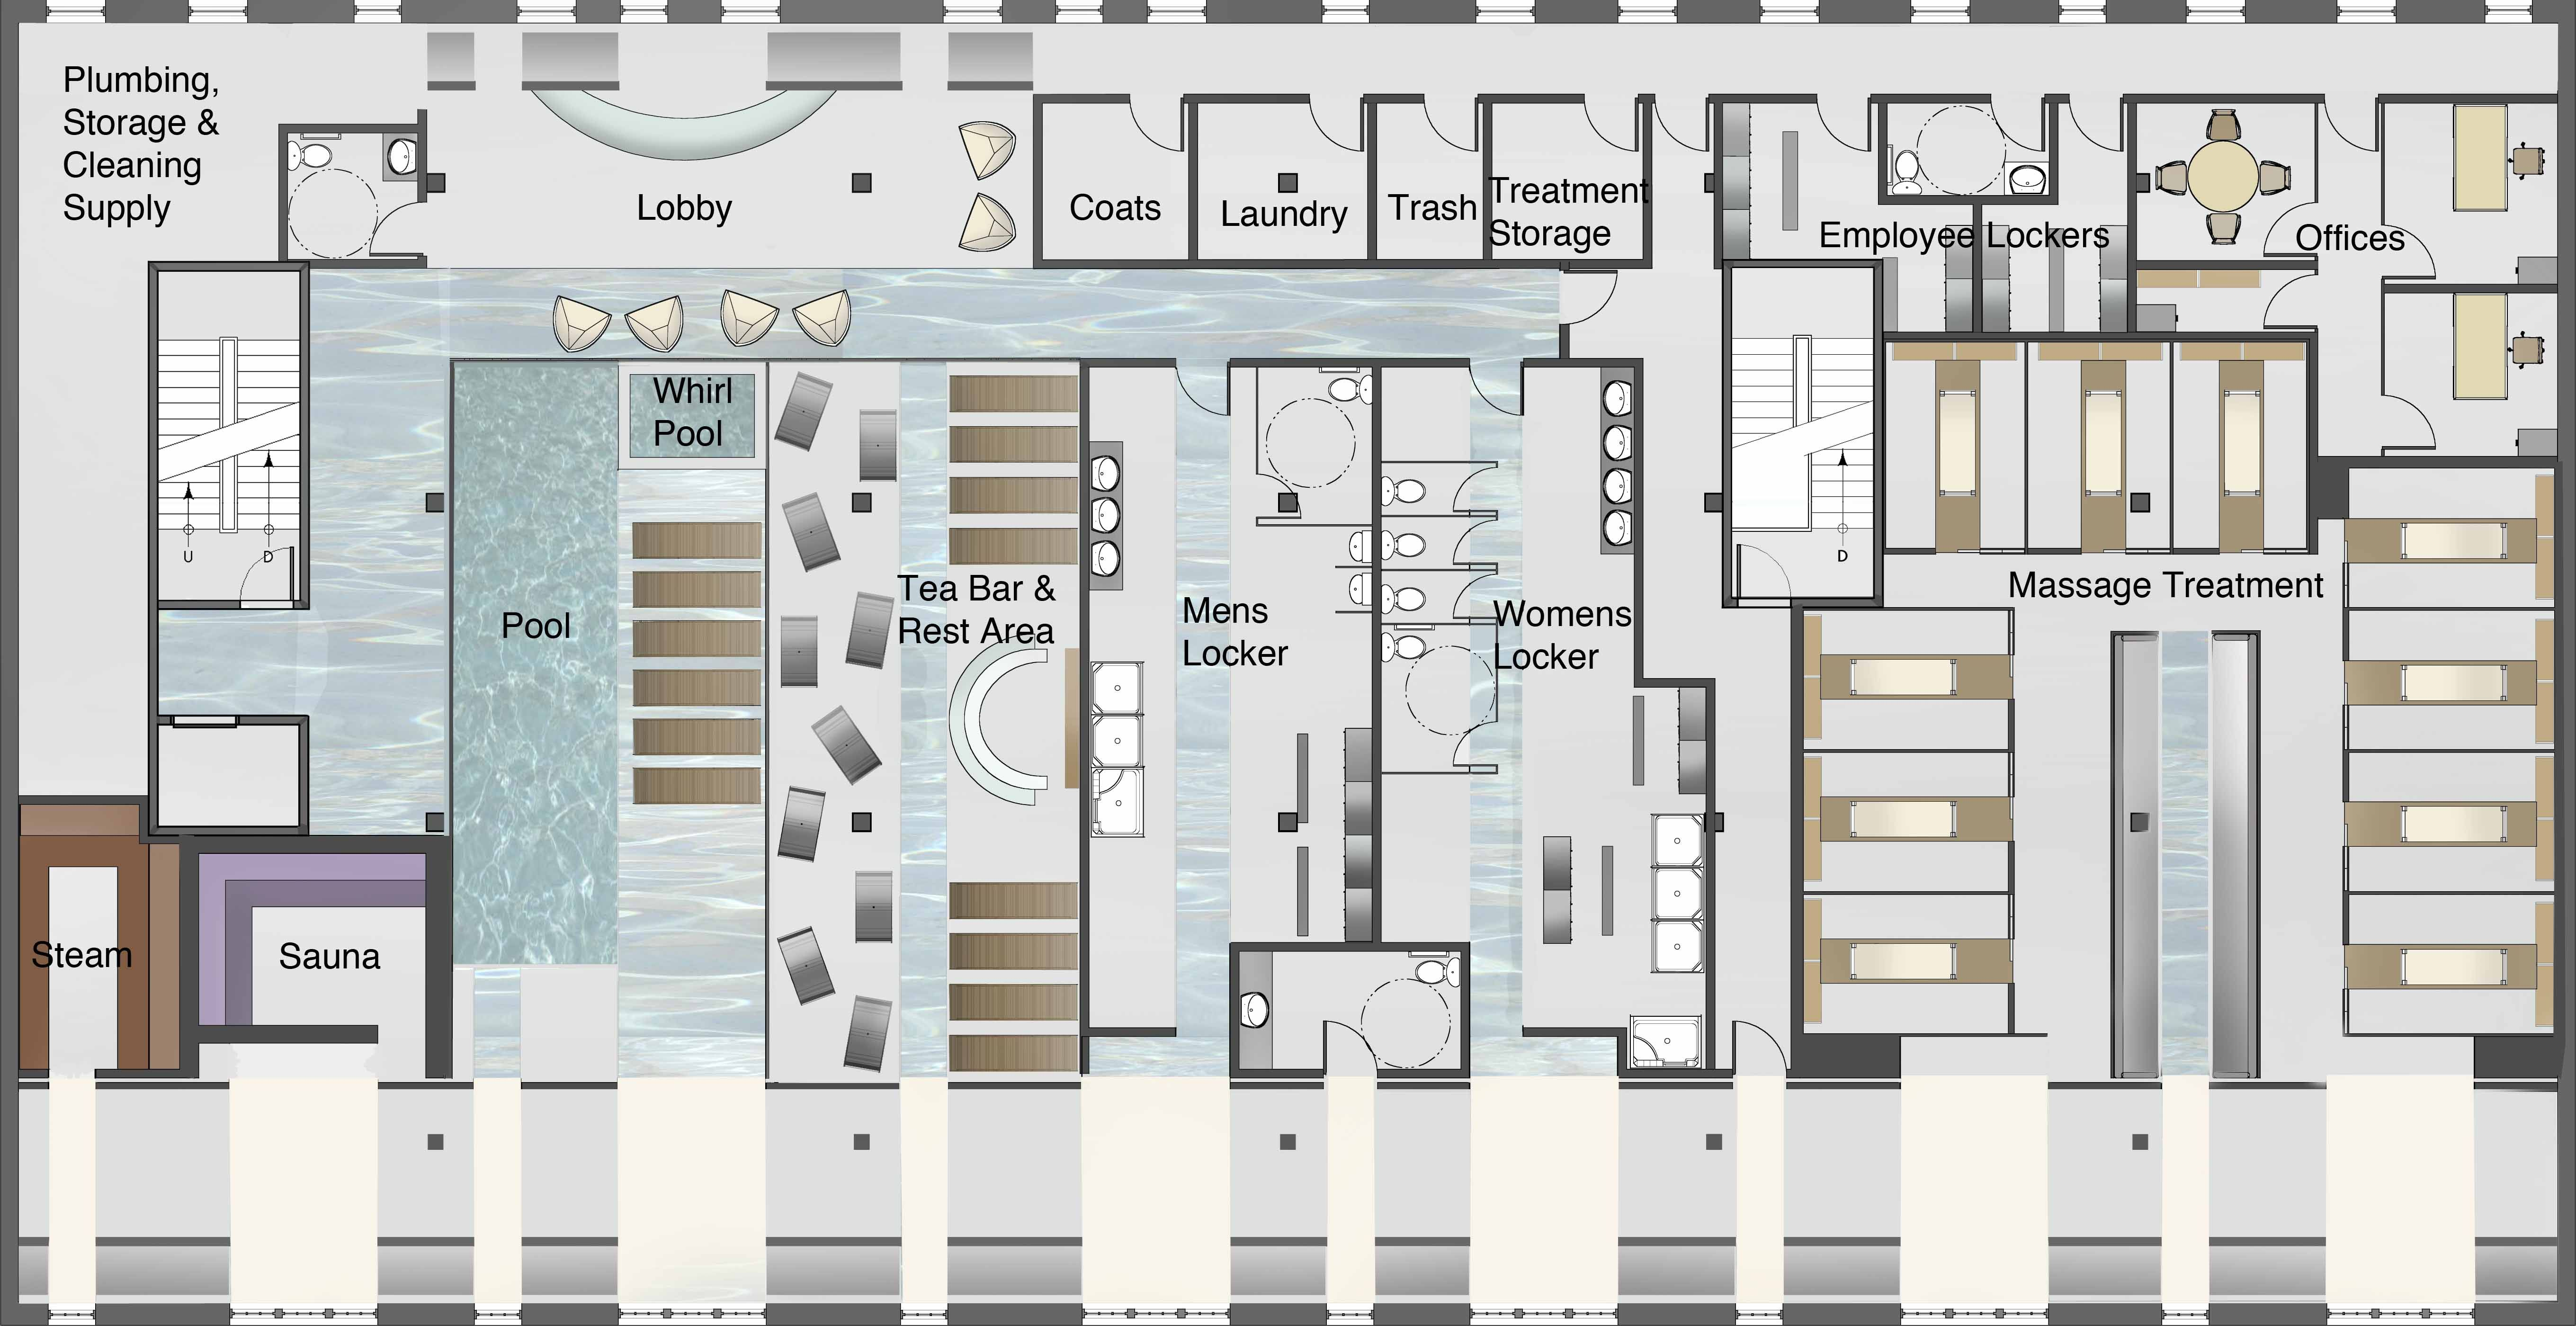 Business Plan Boutique Decoration Luxury Spa Floor Plan Design On Home Decoration Ideas With